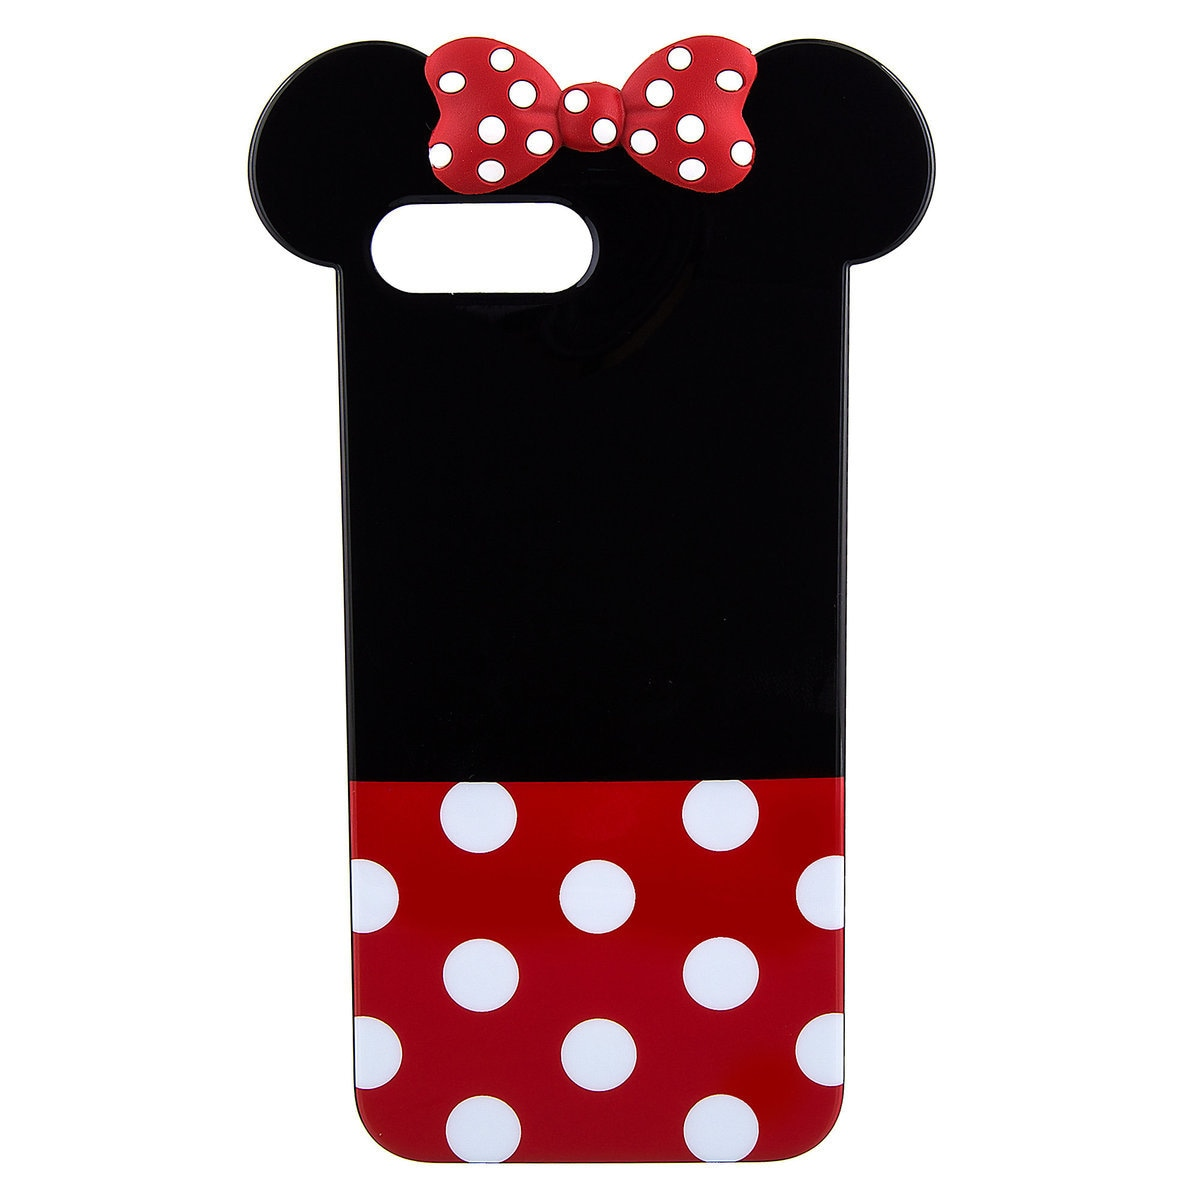 size 40 f8111 b7007 Minnie Mouse Icon iPhone 7/6/6S Plus Case